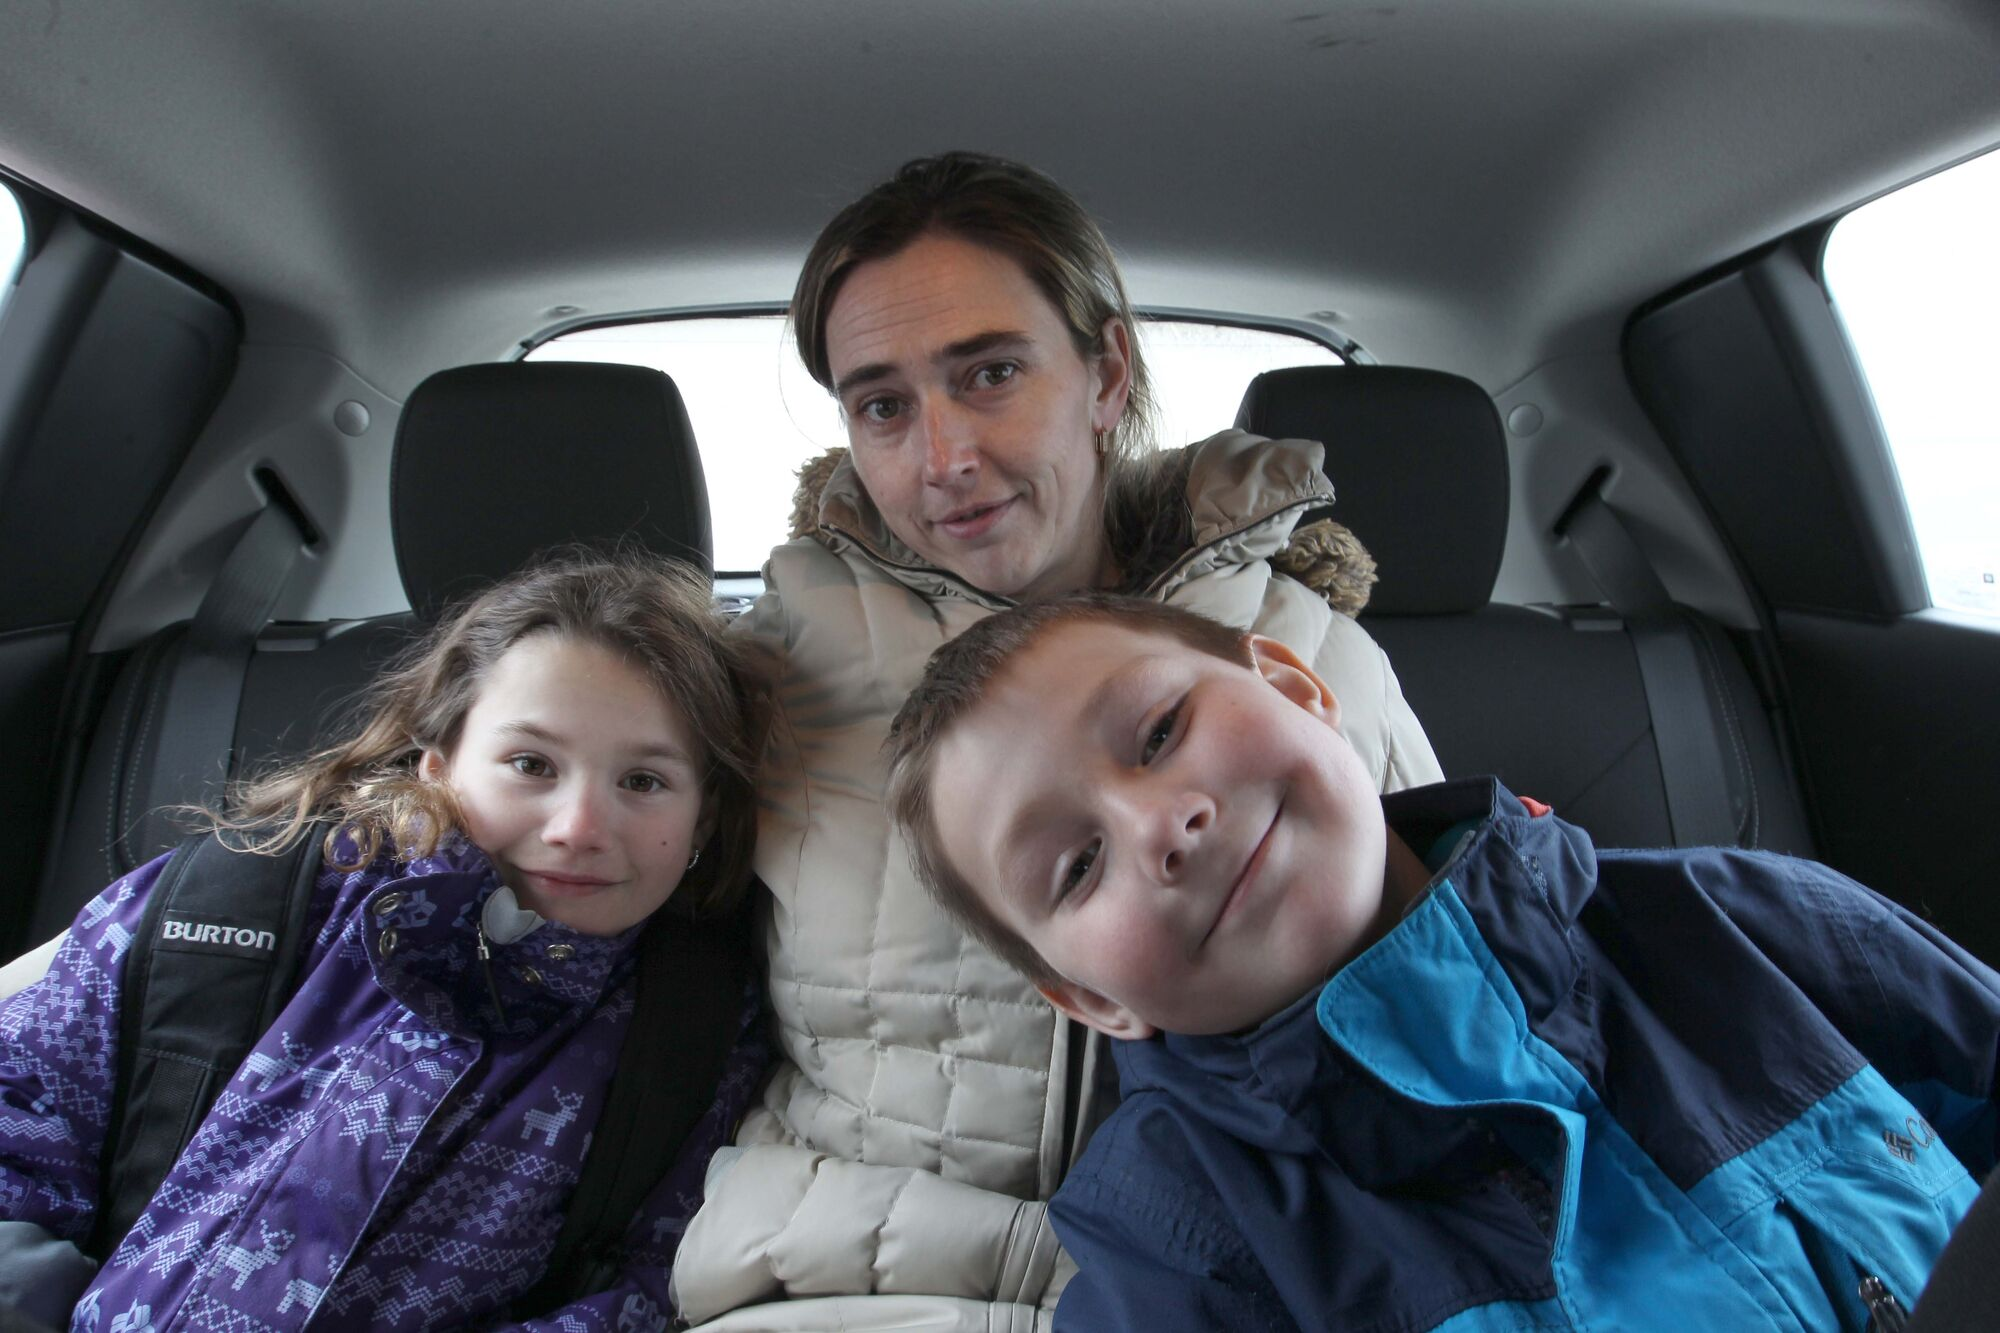 Marta Placzek with her children, Jakub (right) and Justyna, is afraid to return to Poland, where her ex-husband lives.